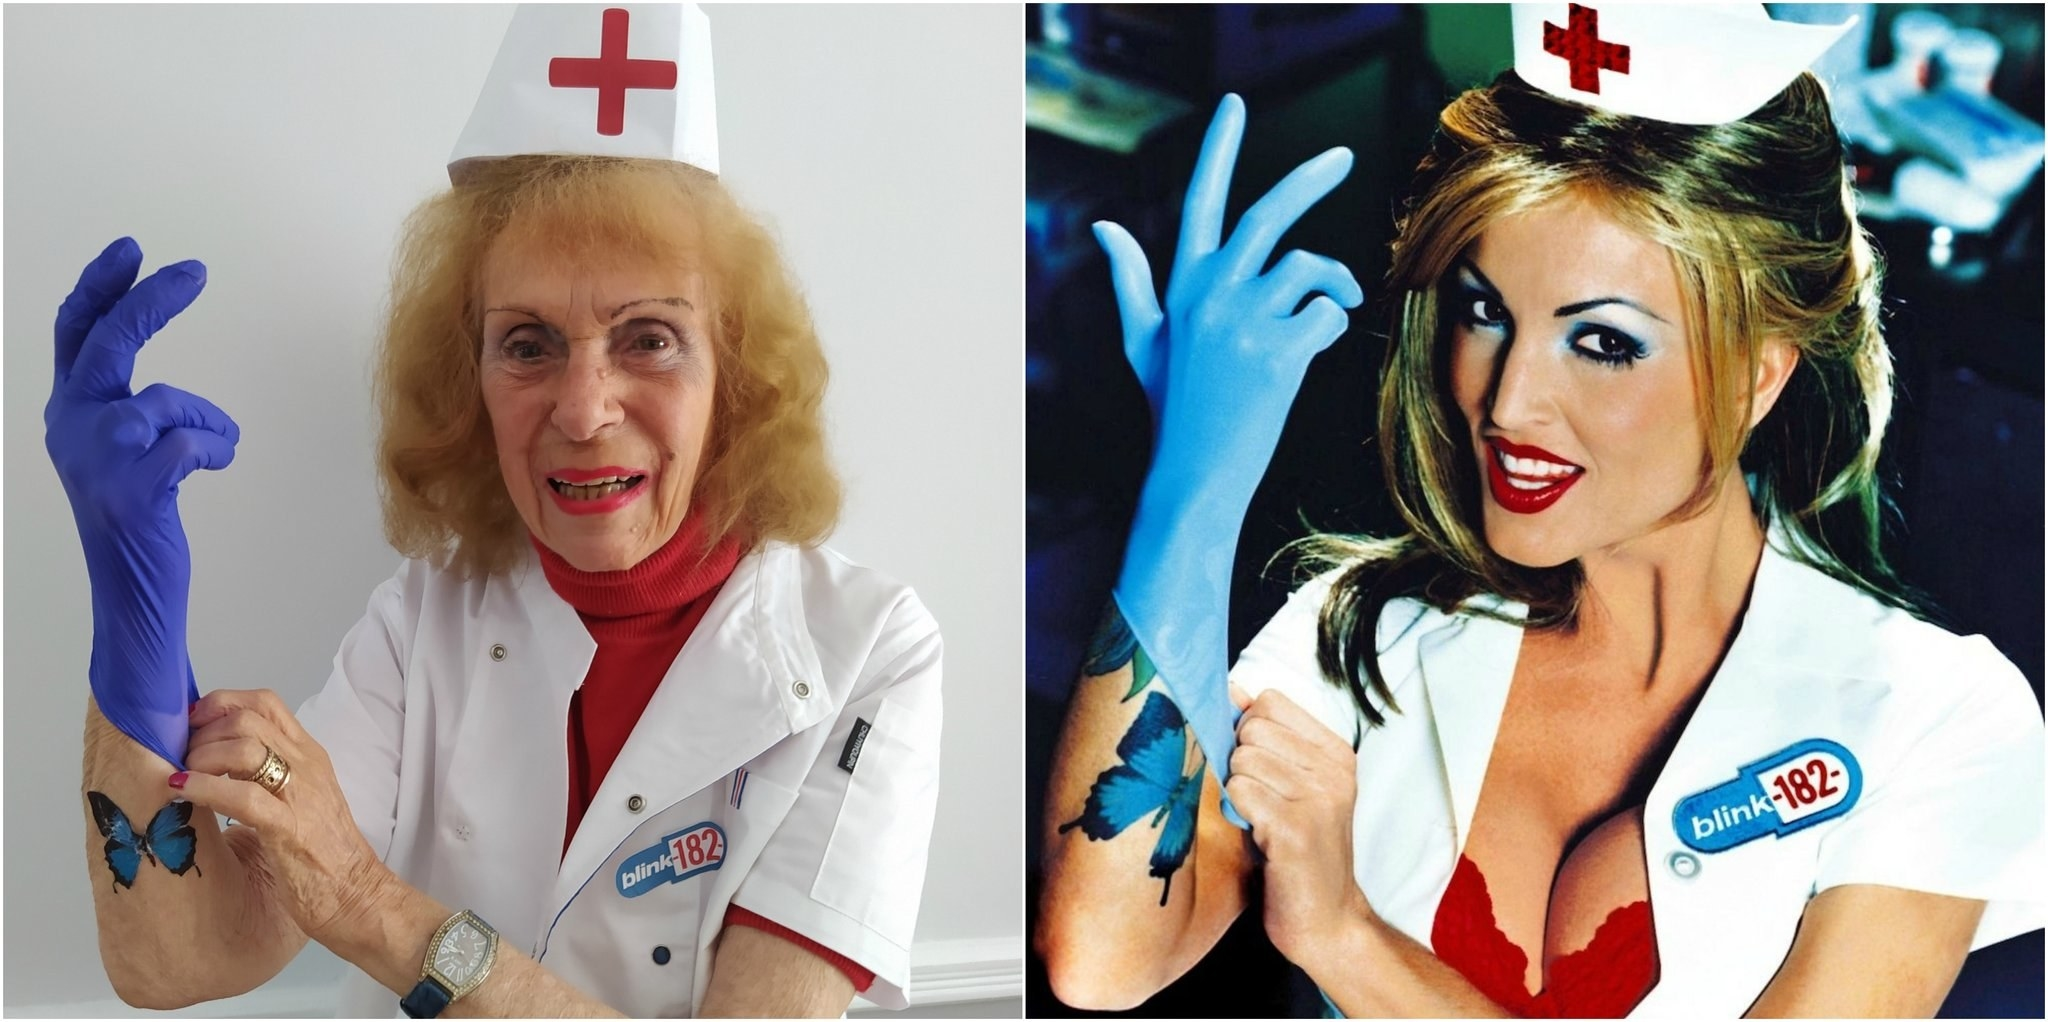 An elderly woman recreating Blink-182's Enema of State album cover